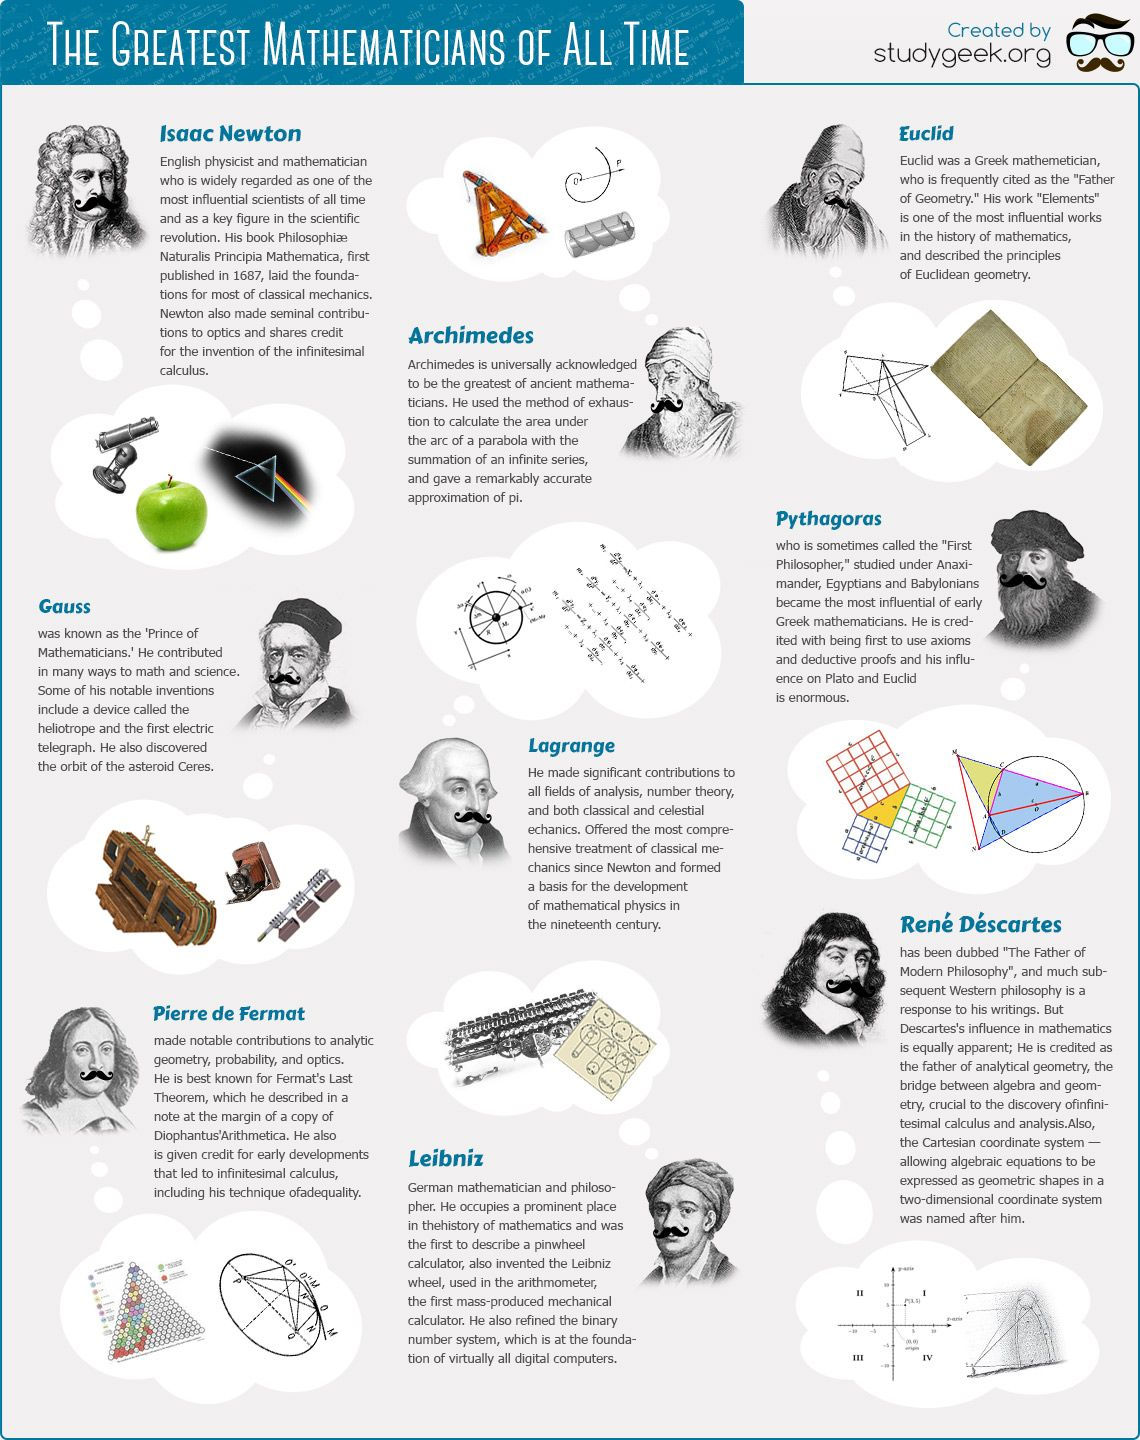 A Beautiful Math Poster Featuring The Greatest Mathematicians Of All Pearly Gates Humbucker Wiring Diagram Free Download Greatiest Time